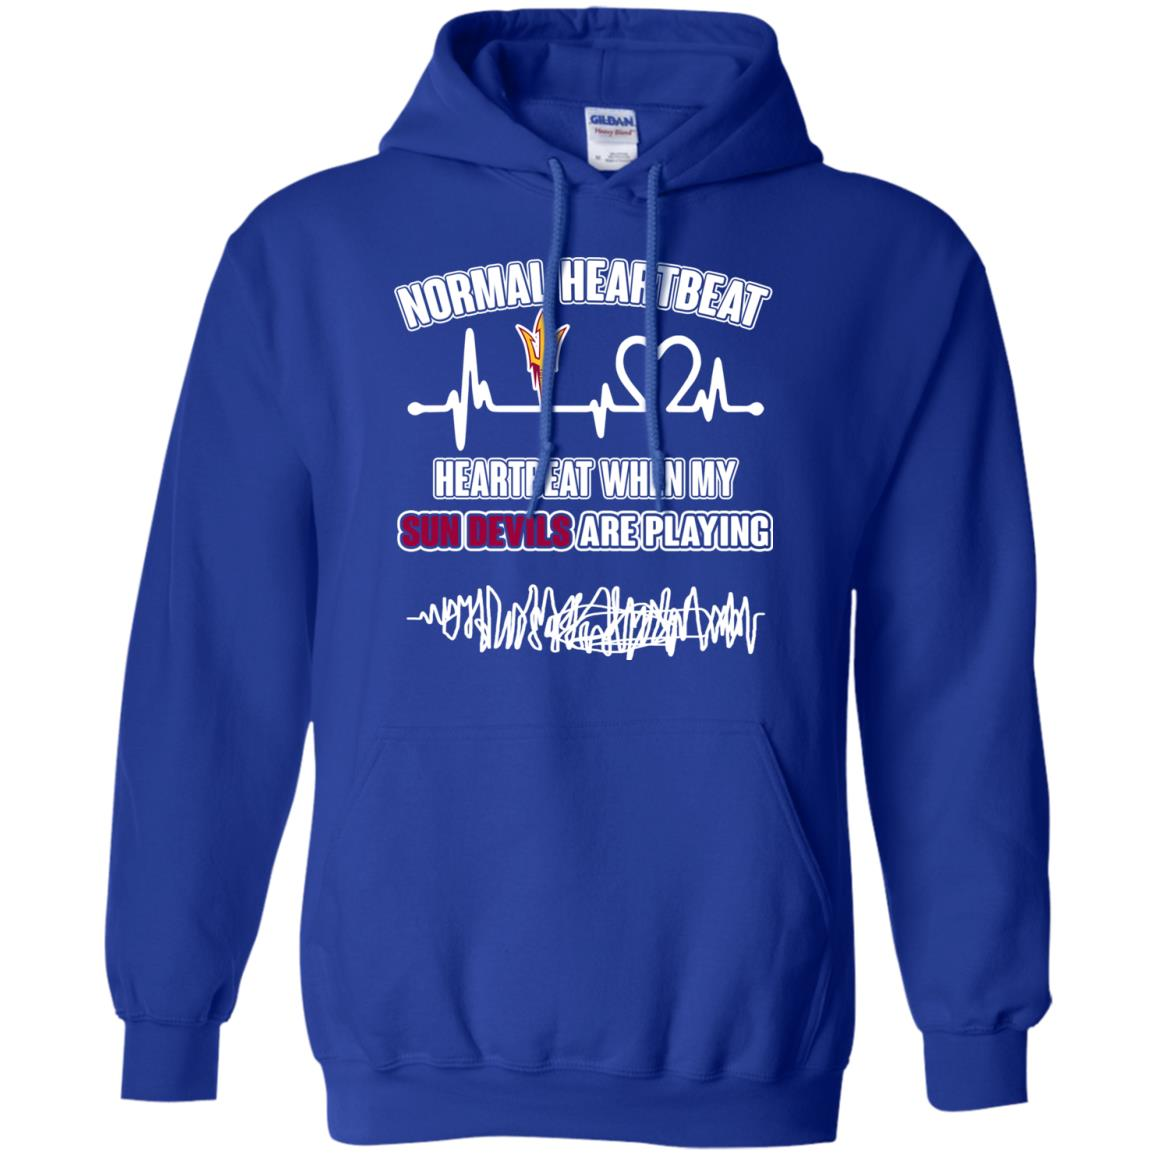 Arizona State Sun Devils T shirts Heartbeat When My Sun Devils Playing Hoodies Sweatshirts